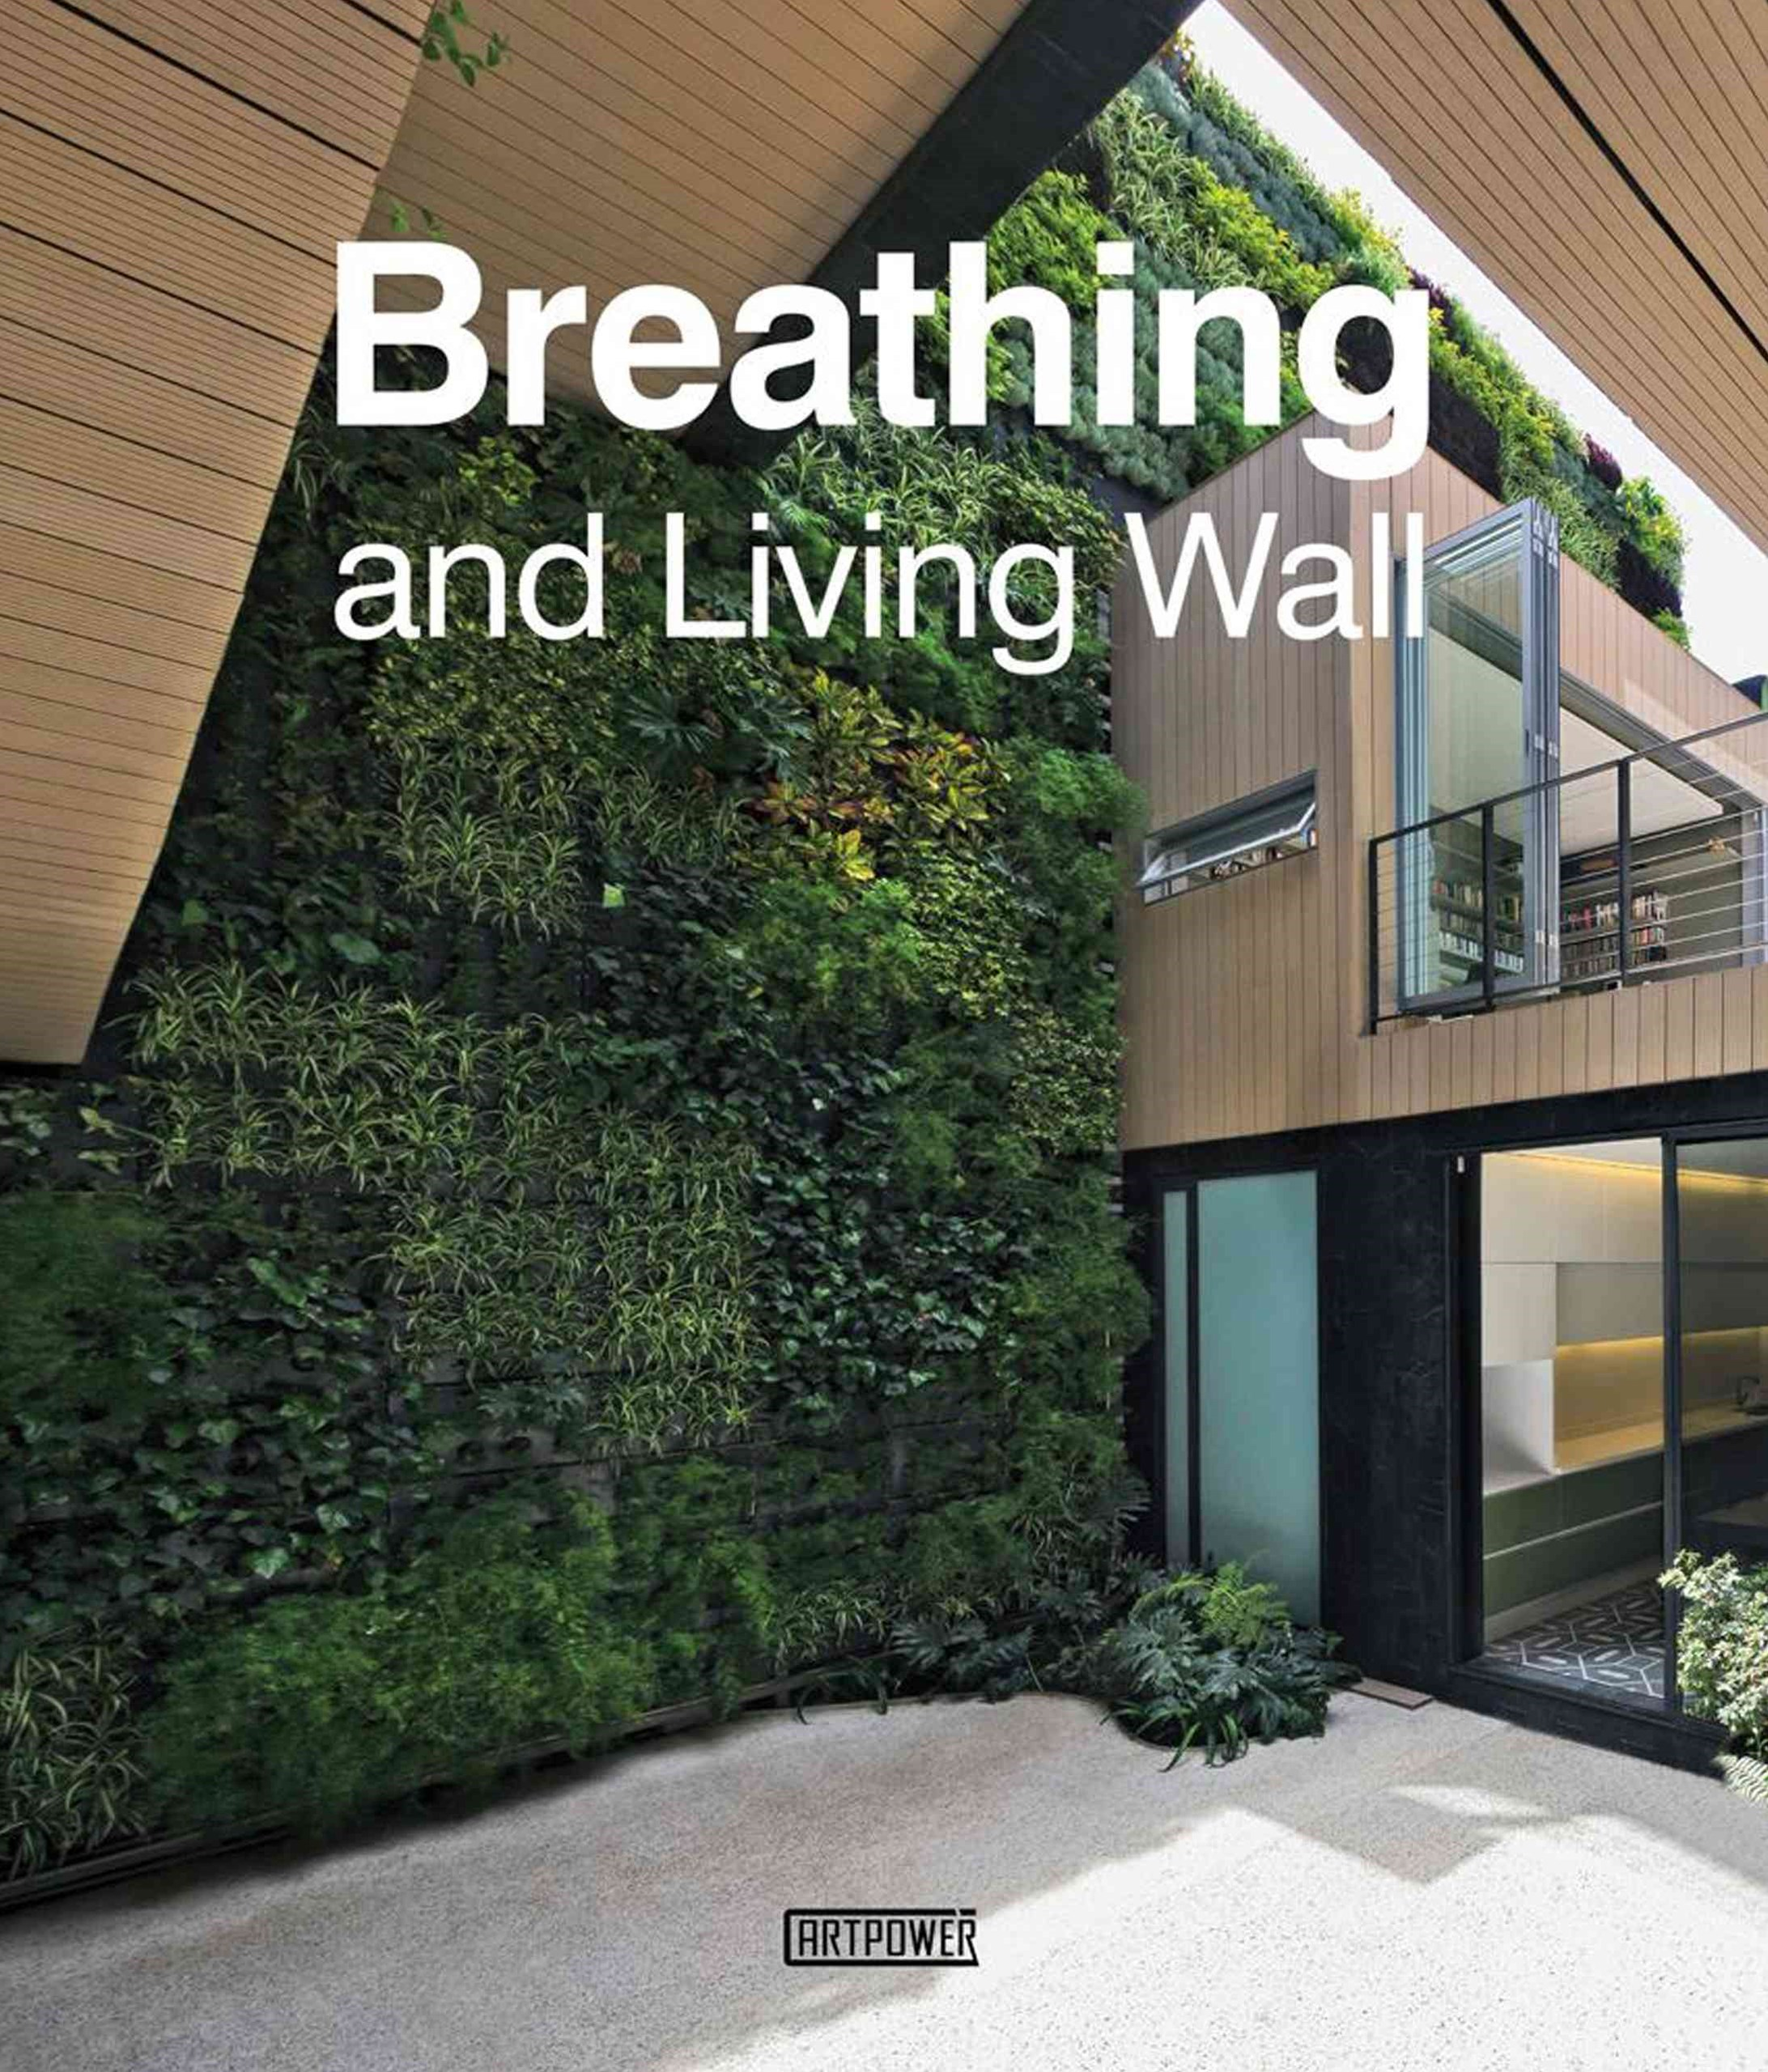 Breathing and Living Wall H/C